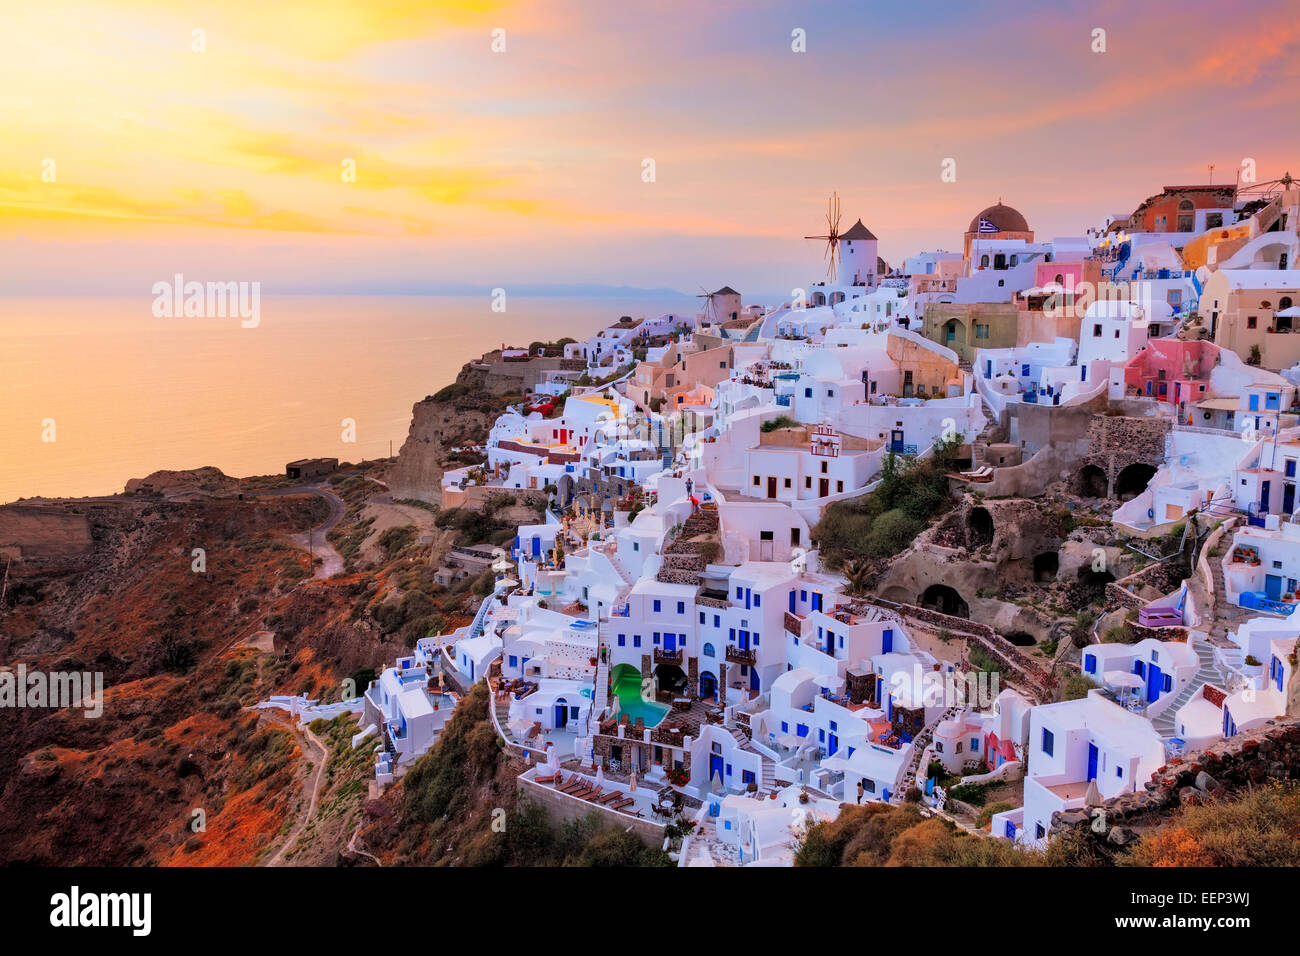 Vibrant sunset over houses and villas at Oia Santorini Greece - Stock Image